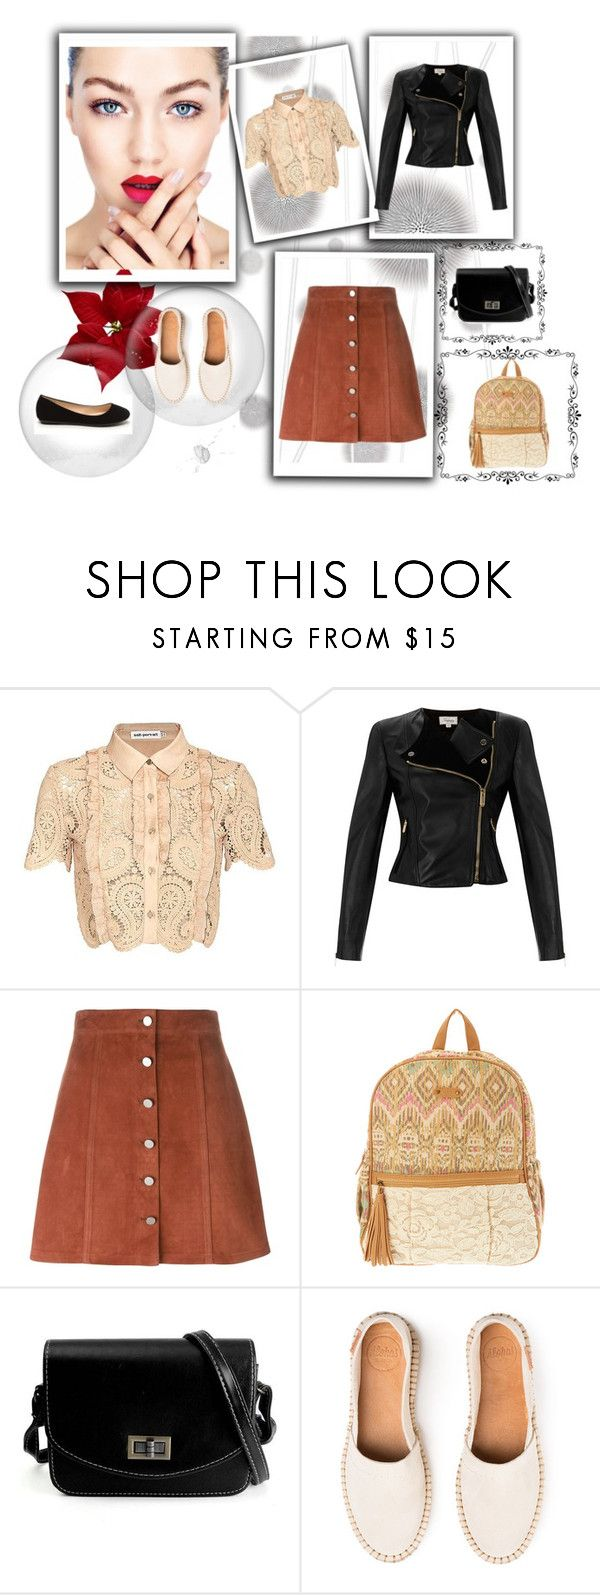 """""""I don't care Tuesday"""" by ogor2812 on Polyvore featuring Komar, self-portrait, Temperley London, Theory and tuesday"""